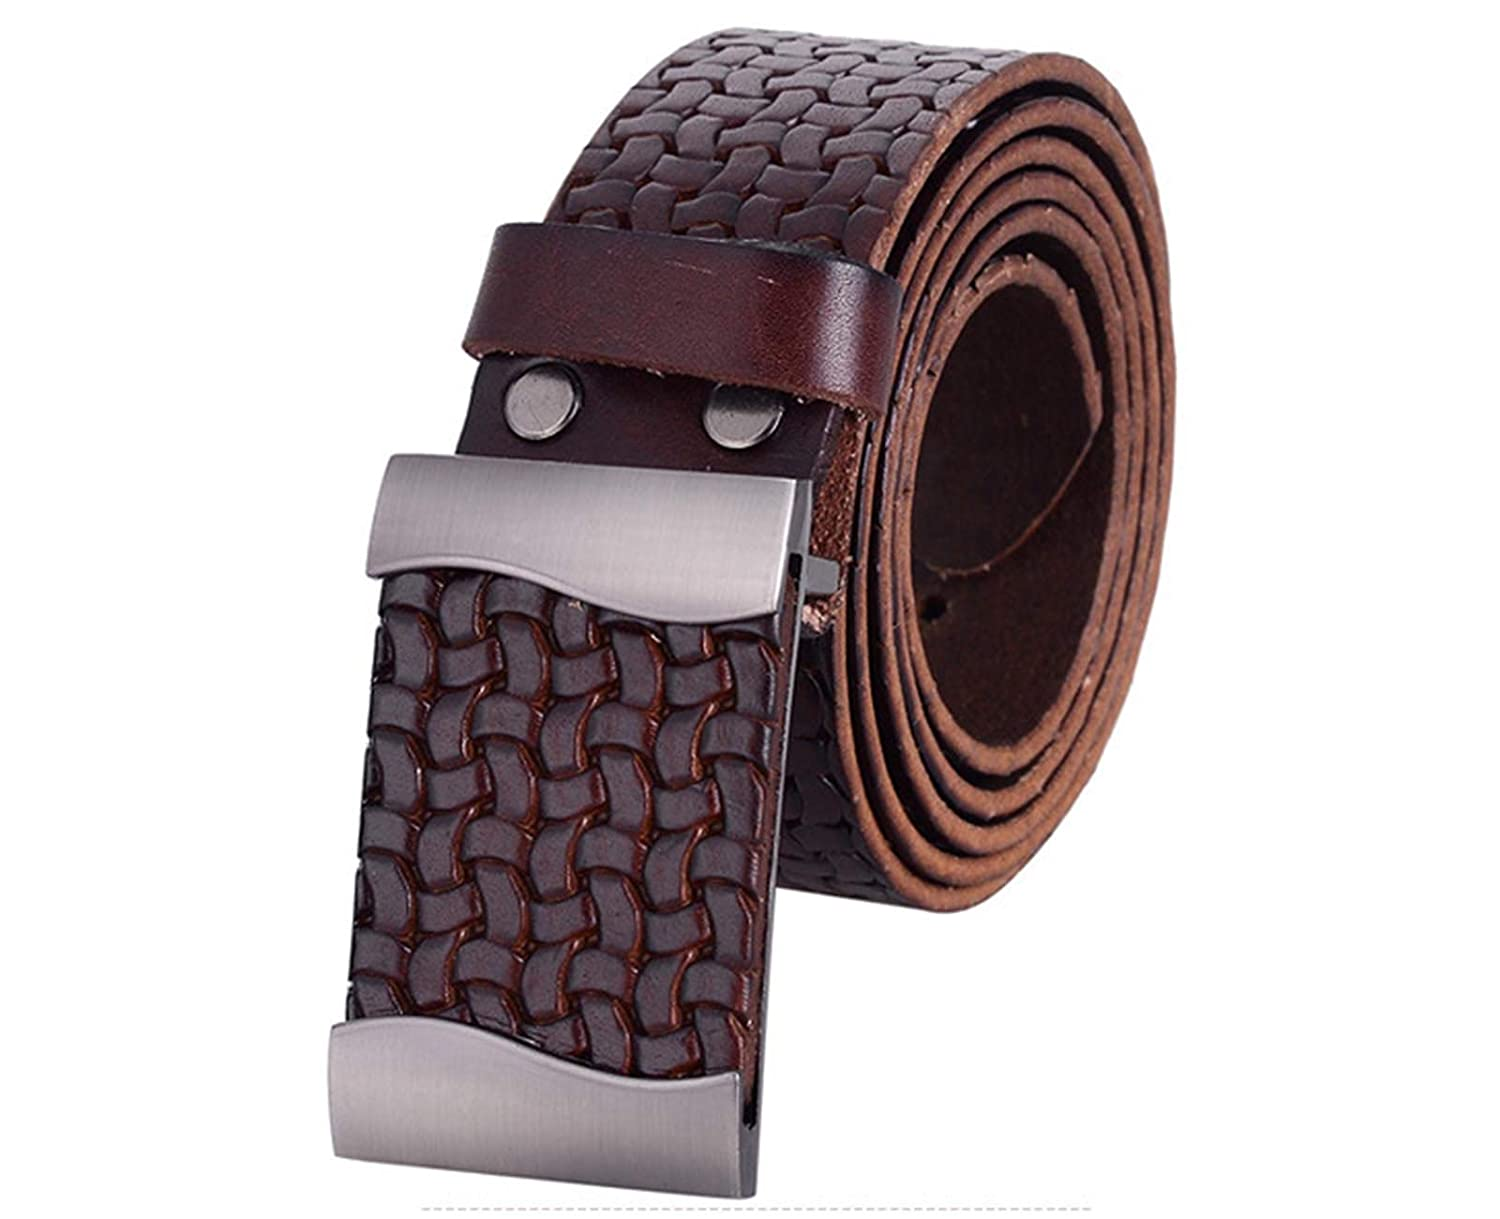 Nidicus Mens Retro Dreadlocks Single Prong Rugged Cowboy Jeans Leather Belt